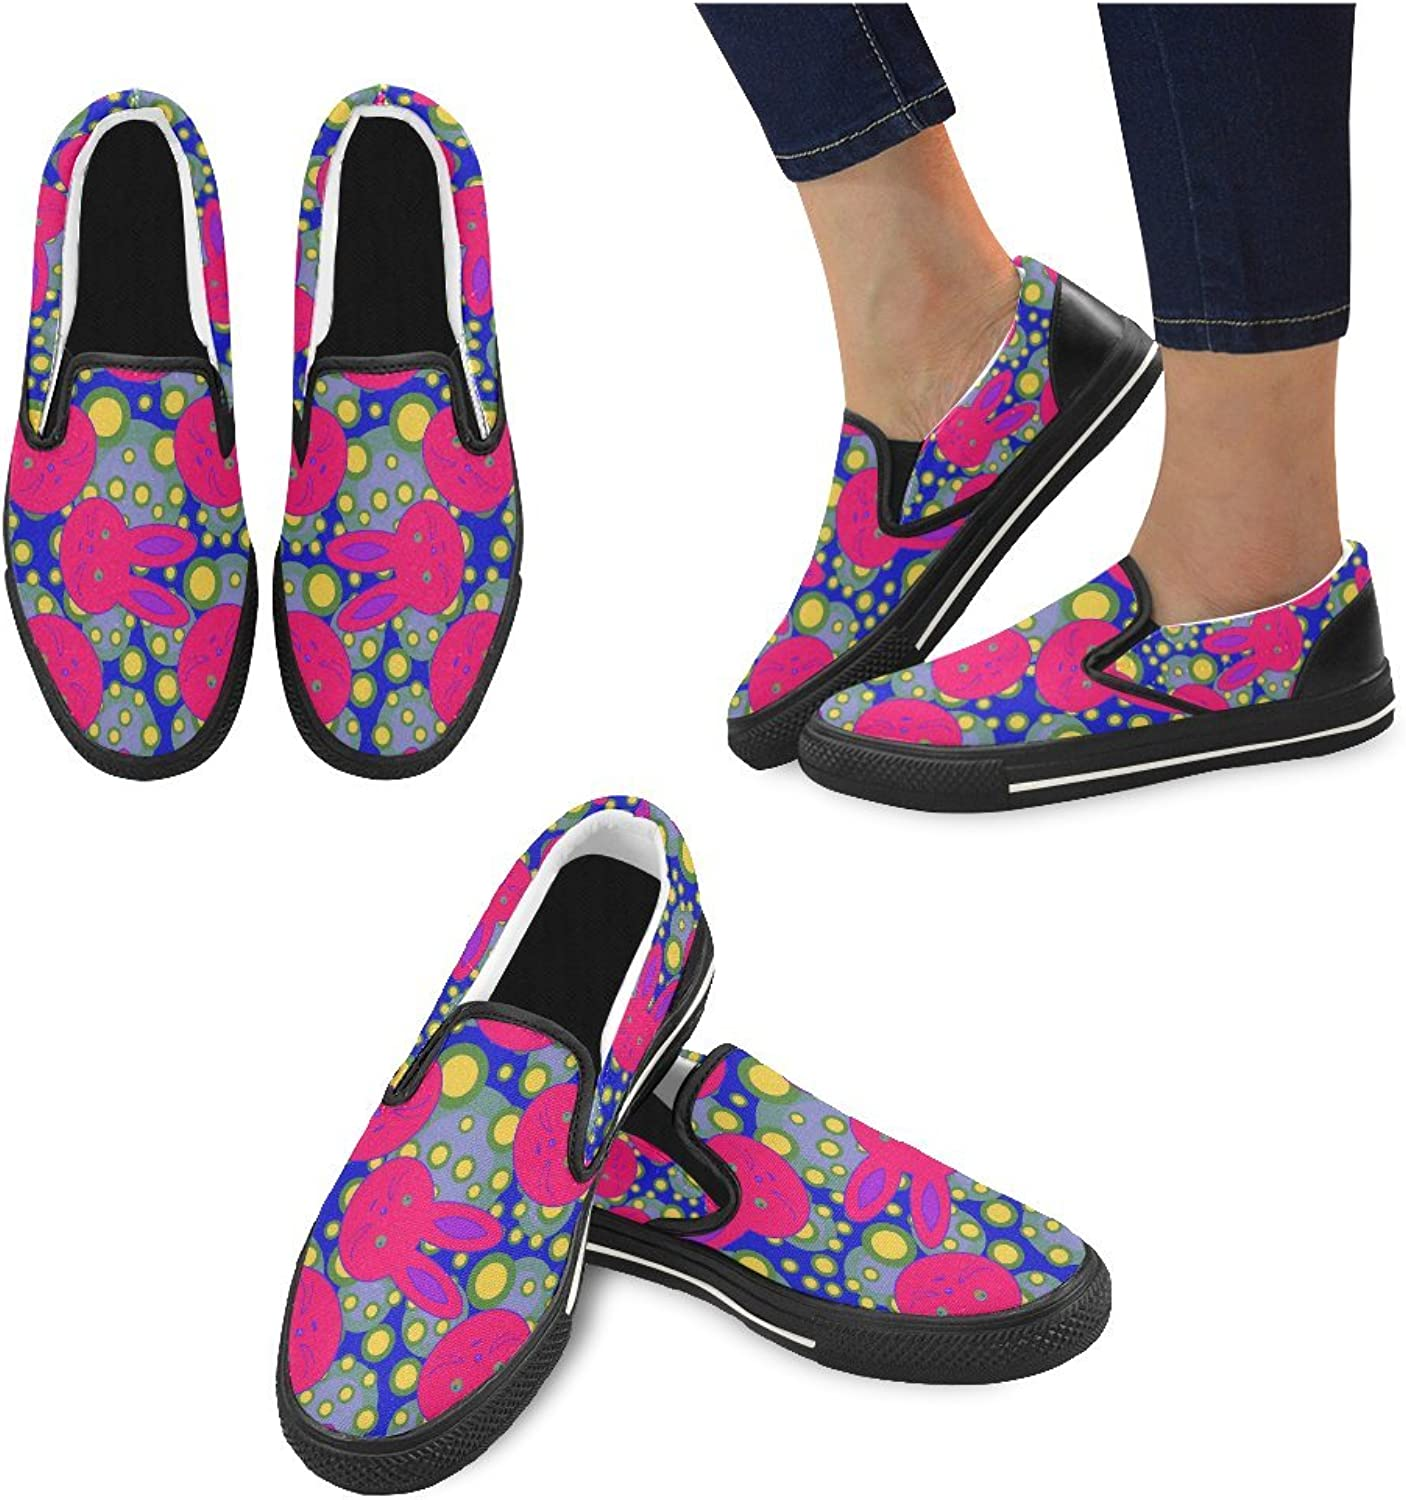 InterestPrint Women's shoes Slip On Casual Canvas Fashion shoes Sneaker Day of The Dead